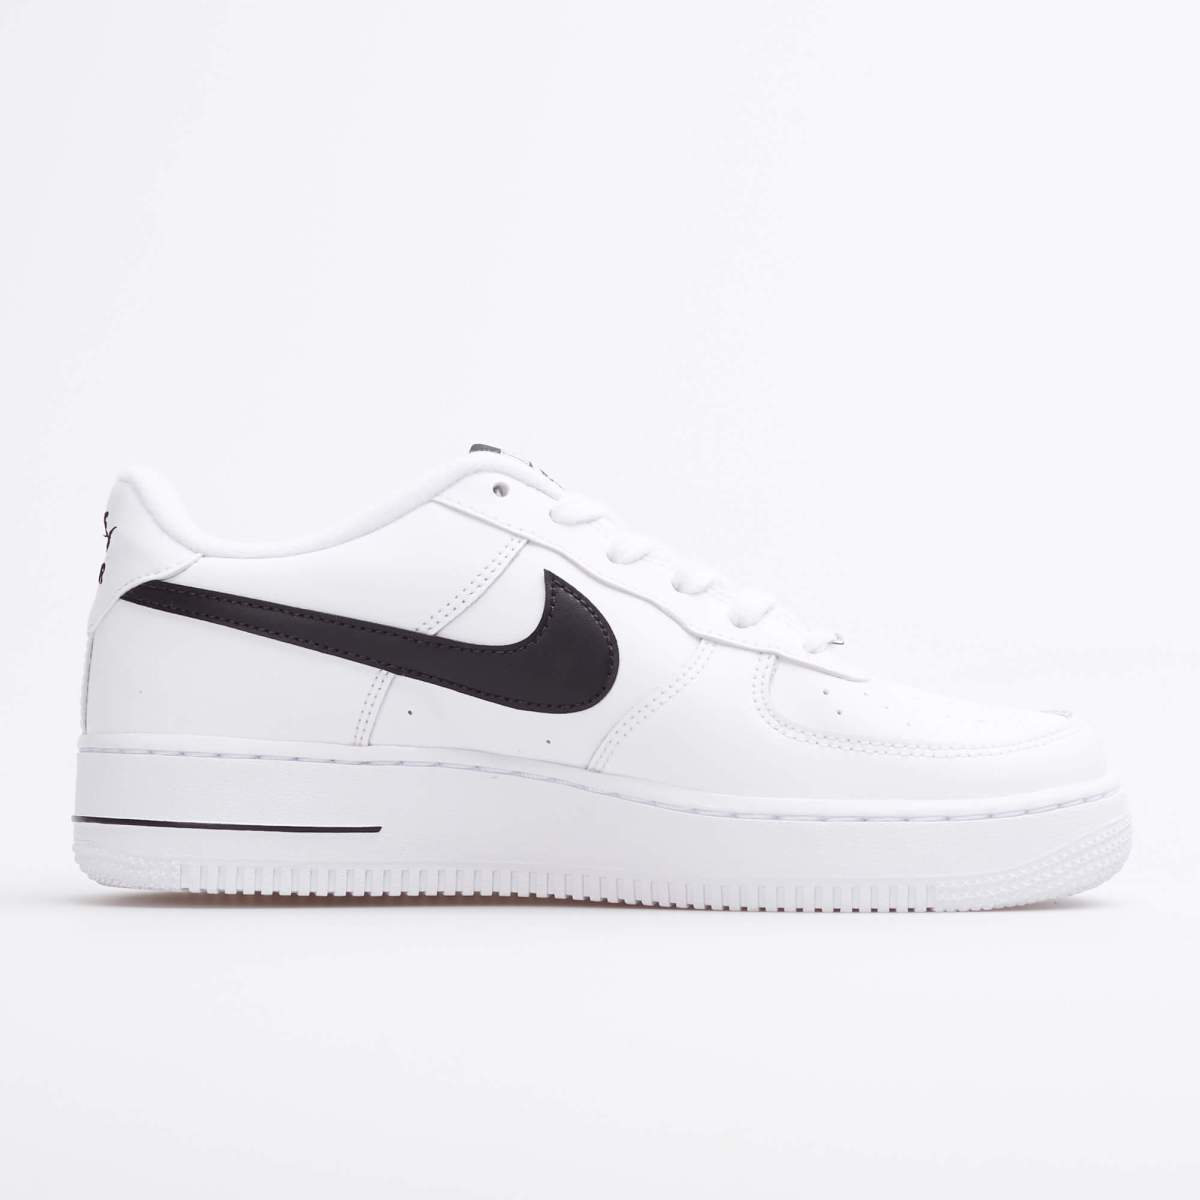 air_force_1_an20_gs_ct7724-100_nike_ct7724-100